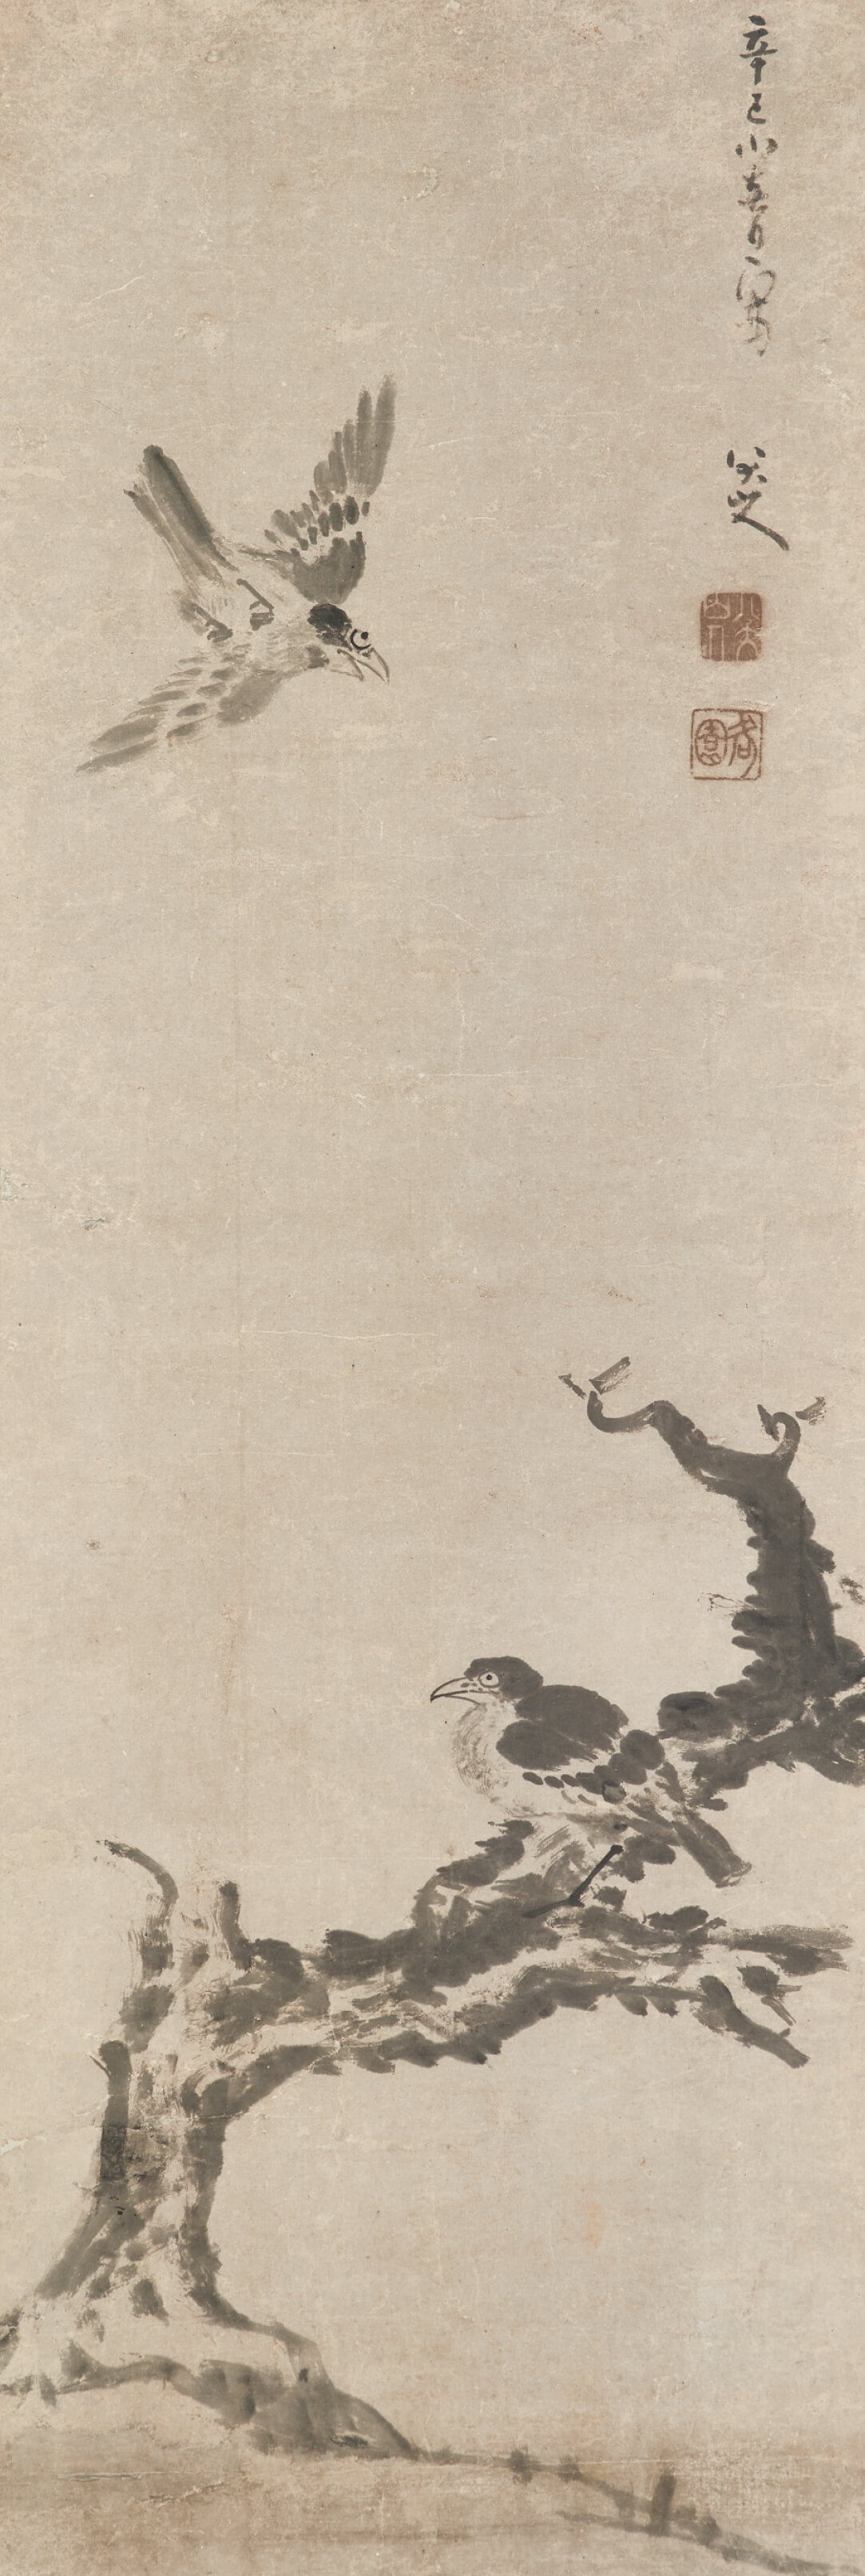 Property of an Asian private collection. Bada Shanren (1626-1705), Barren Tree and Birds, 1701. Hanging scroll, ink on paper. 127.5 x 43.2 cm. (50 ¼ x 17 in.). Estimate HK$5,000,000 - 7,000,000. Offered in Fine Chinese Classical Paintings and Calligraphy on 2 December at Christie's in Hong Kong.